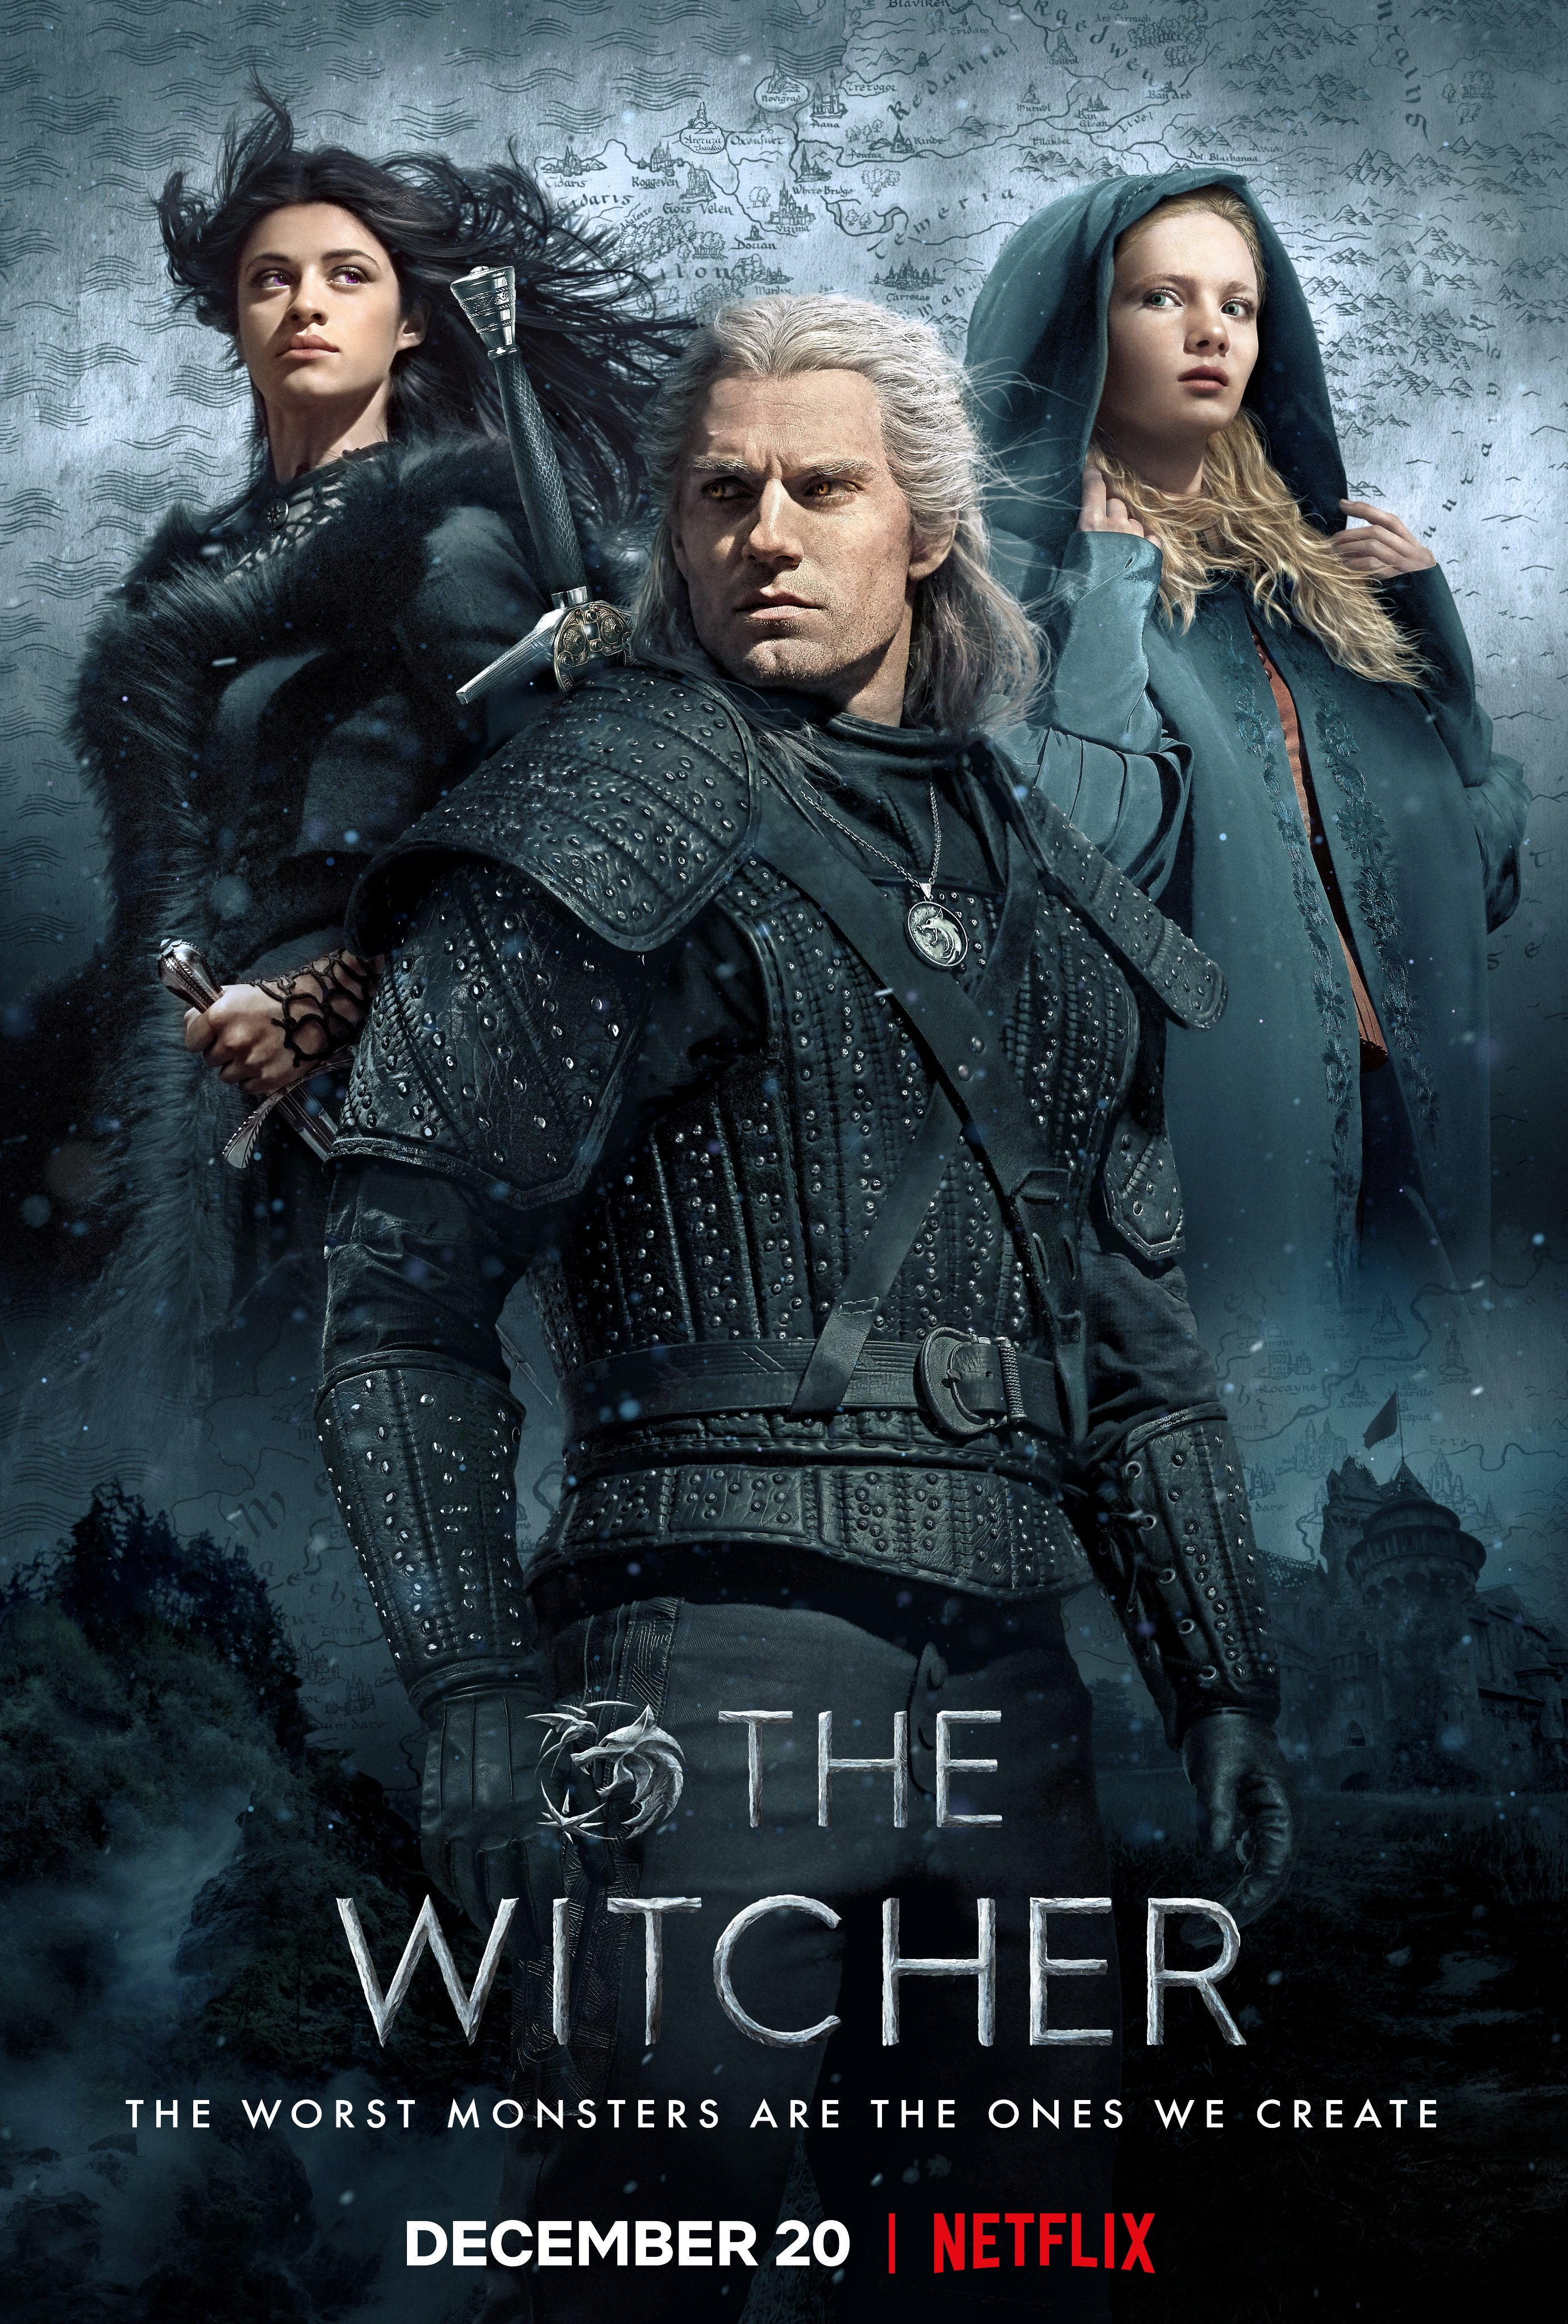 The Witcher Season 2 Production Set To Resume In August